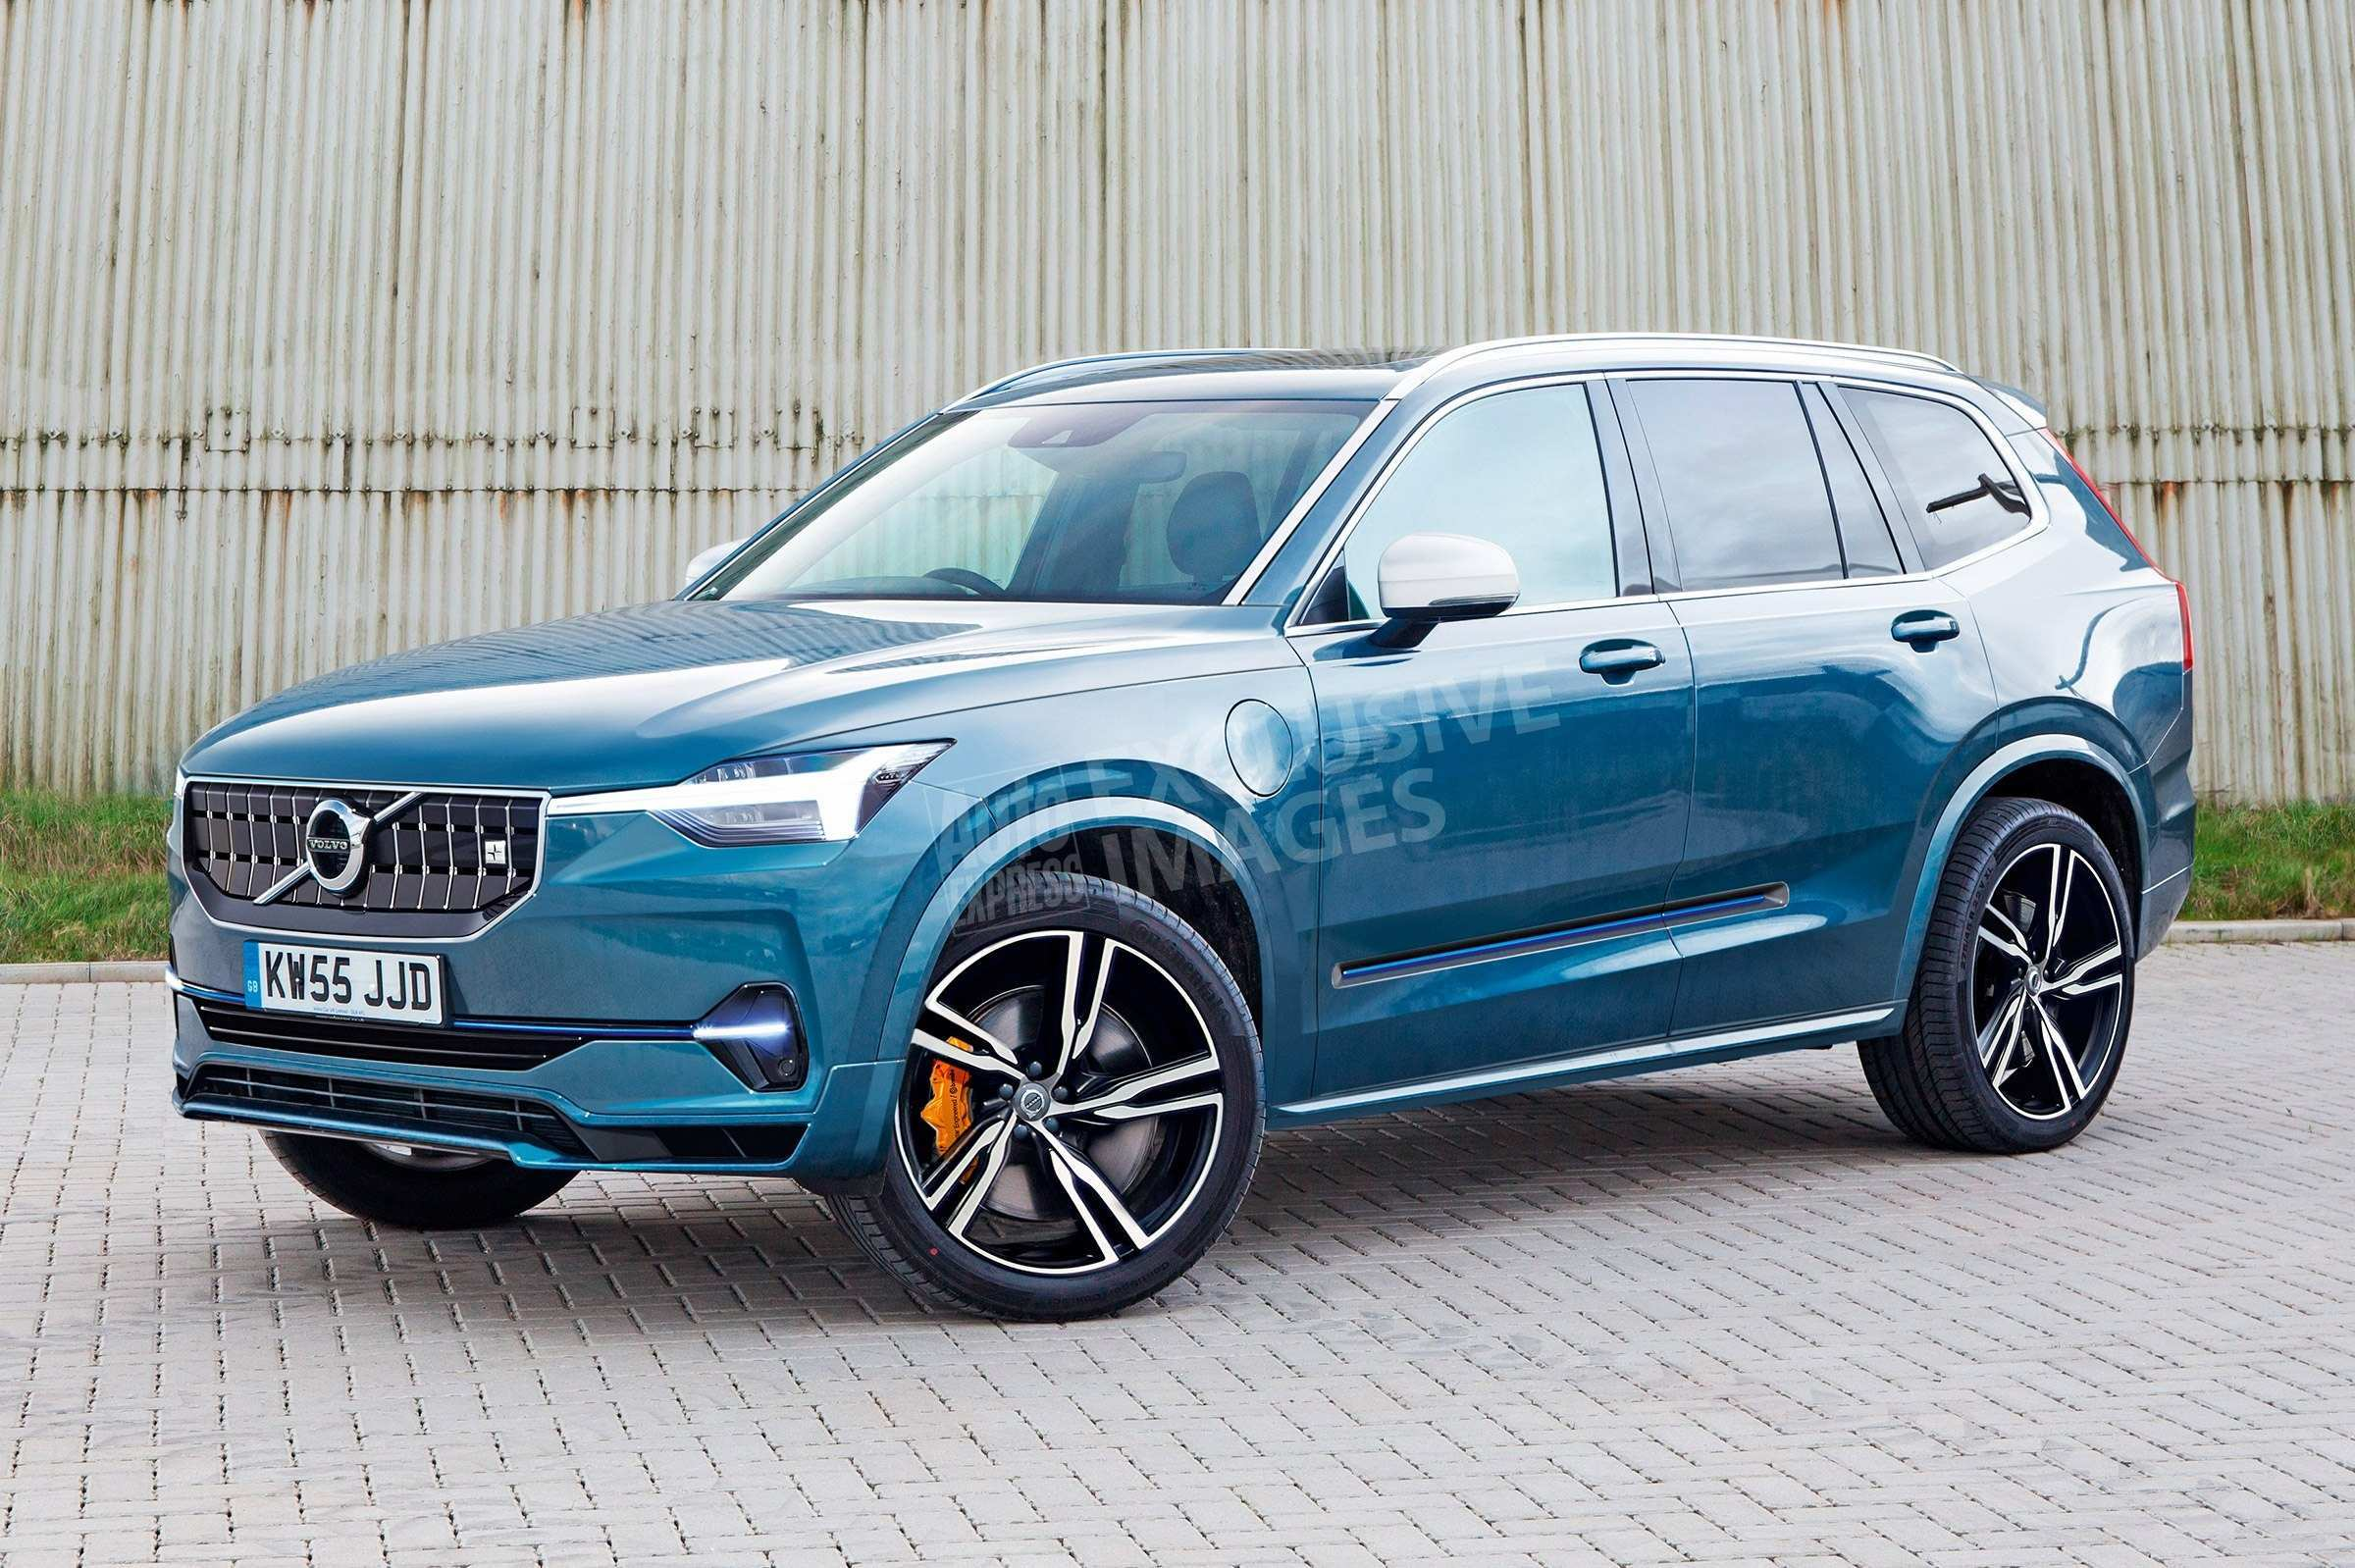 26 Best Review Difference Between 2019 And 2020 Volvo Xc90 Rumors with Difference Between 2019 And 2020 Volvo Xc90